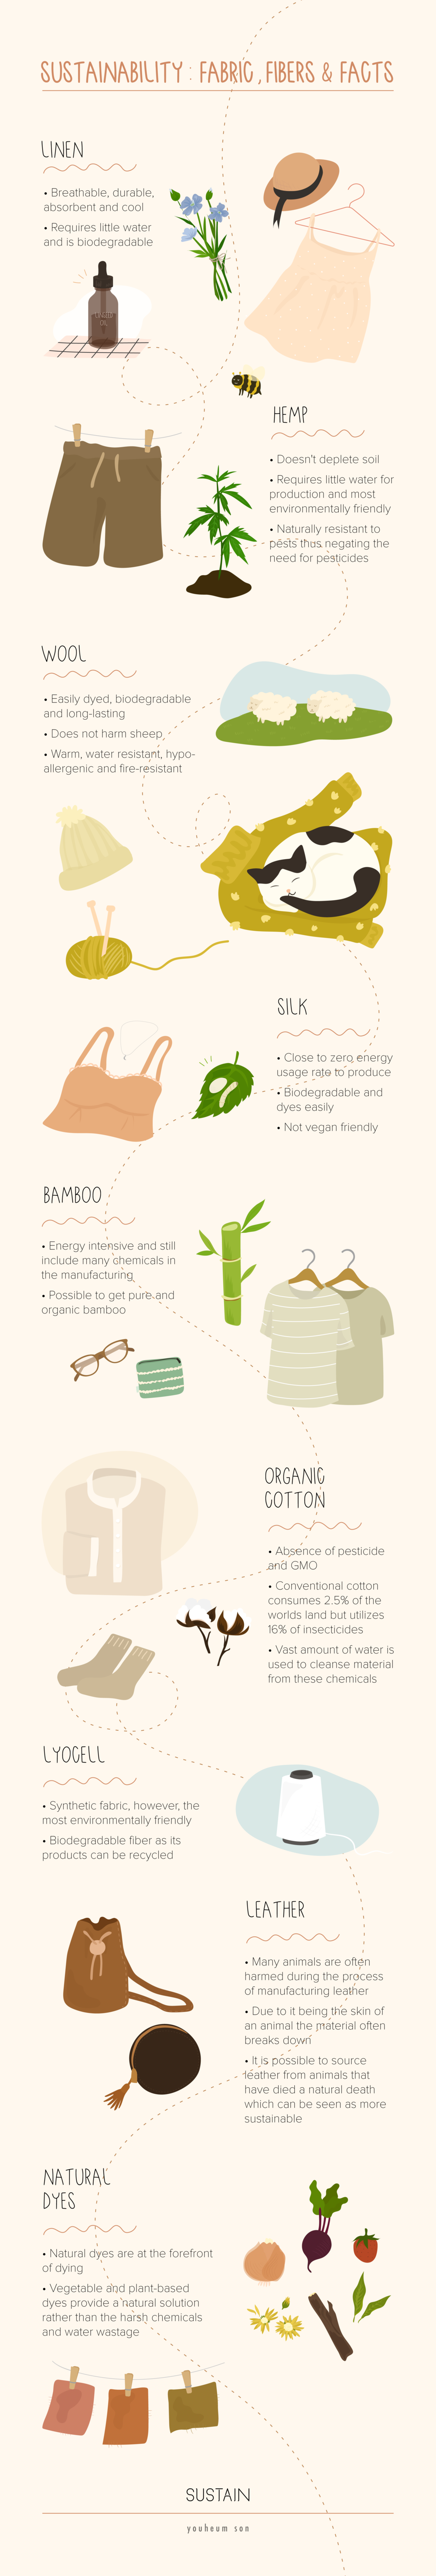 Youheum Son_Sustainability fabrics, fibers, and facts_Sustain Magazine_v2-01.png